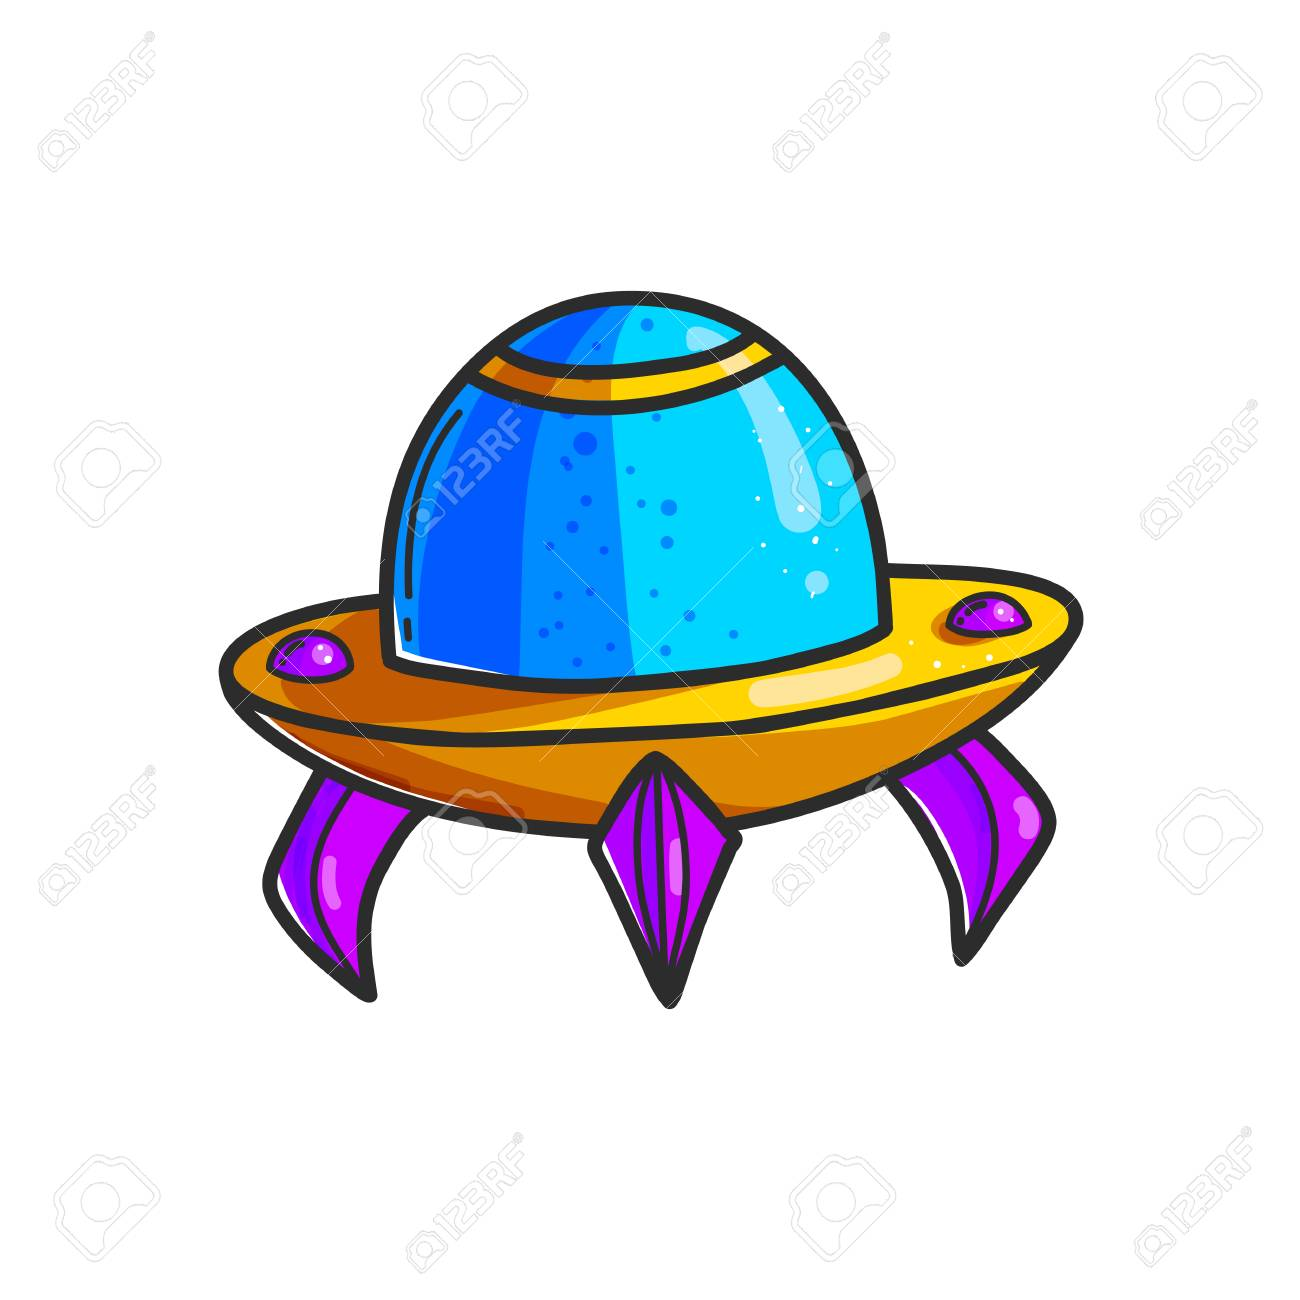 Cartoon Flying Saucers Hand Drawn Color Illustration Cute Ufo Royalty Free Cliparts Vectors And Stock Illustration Image 112511612